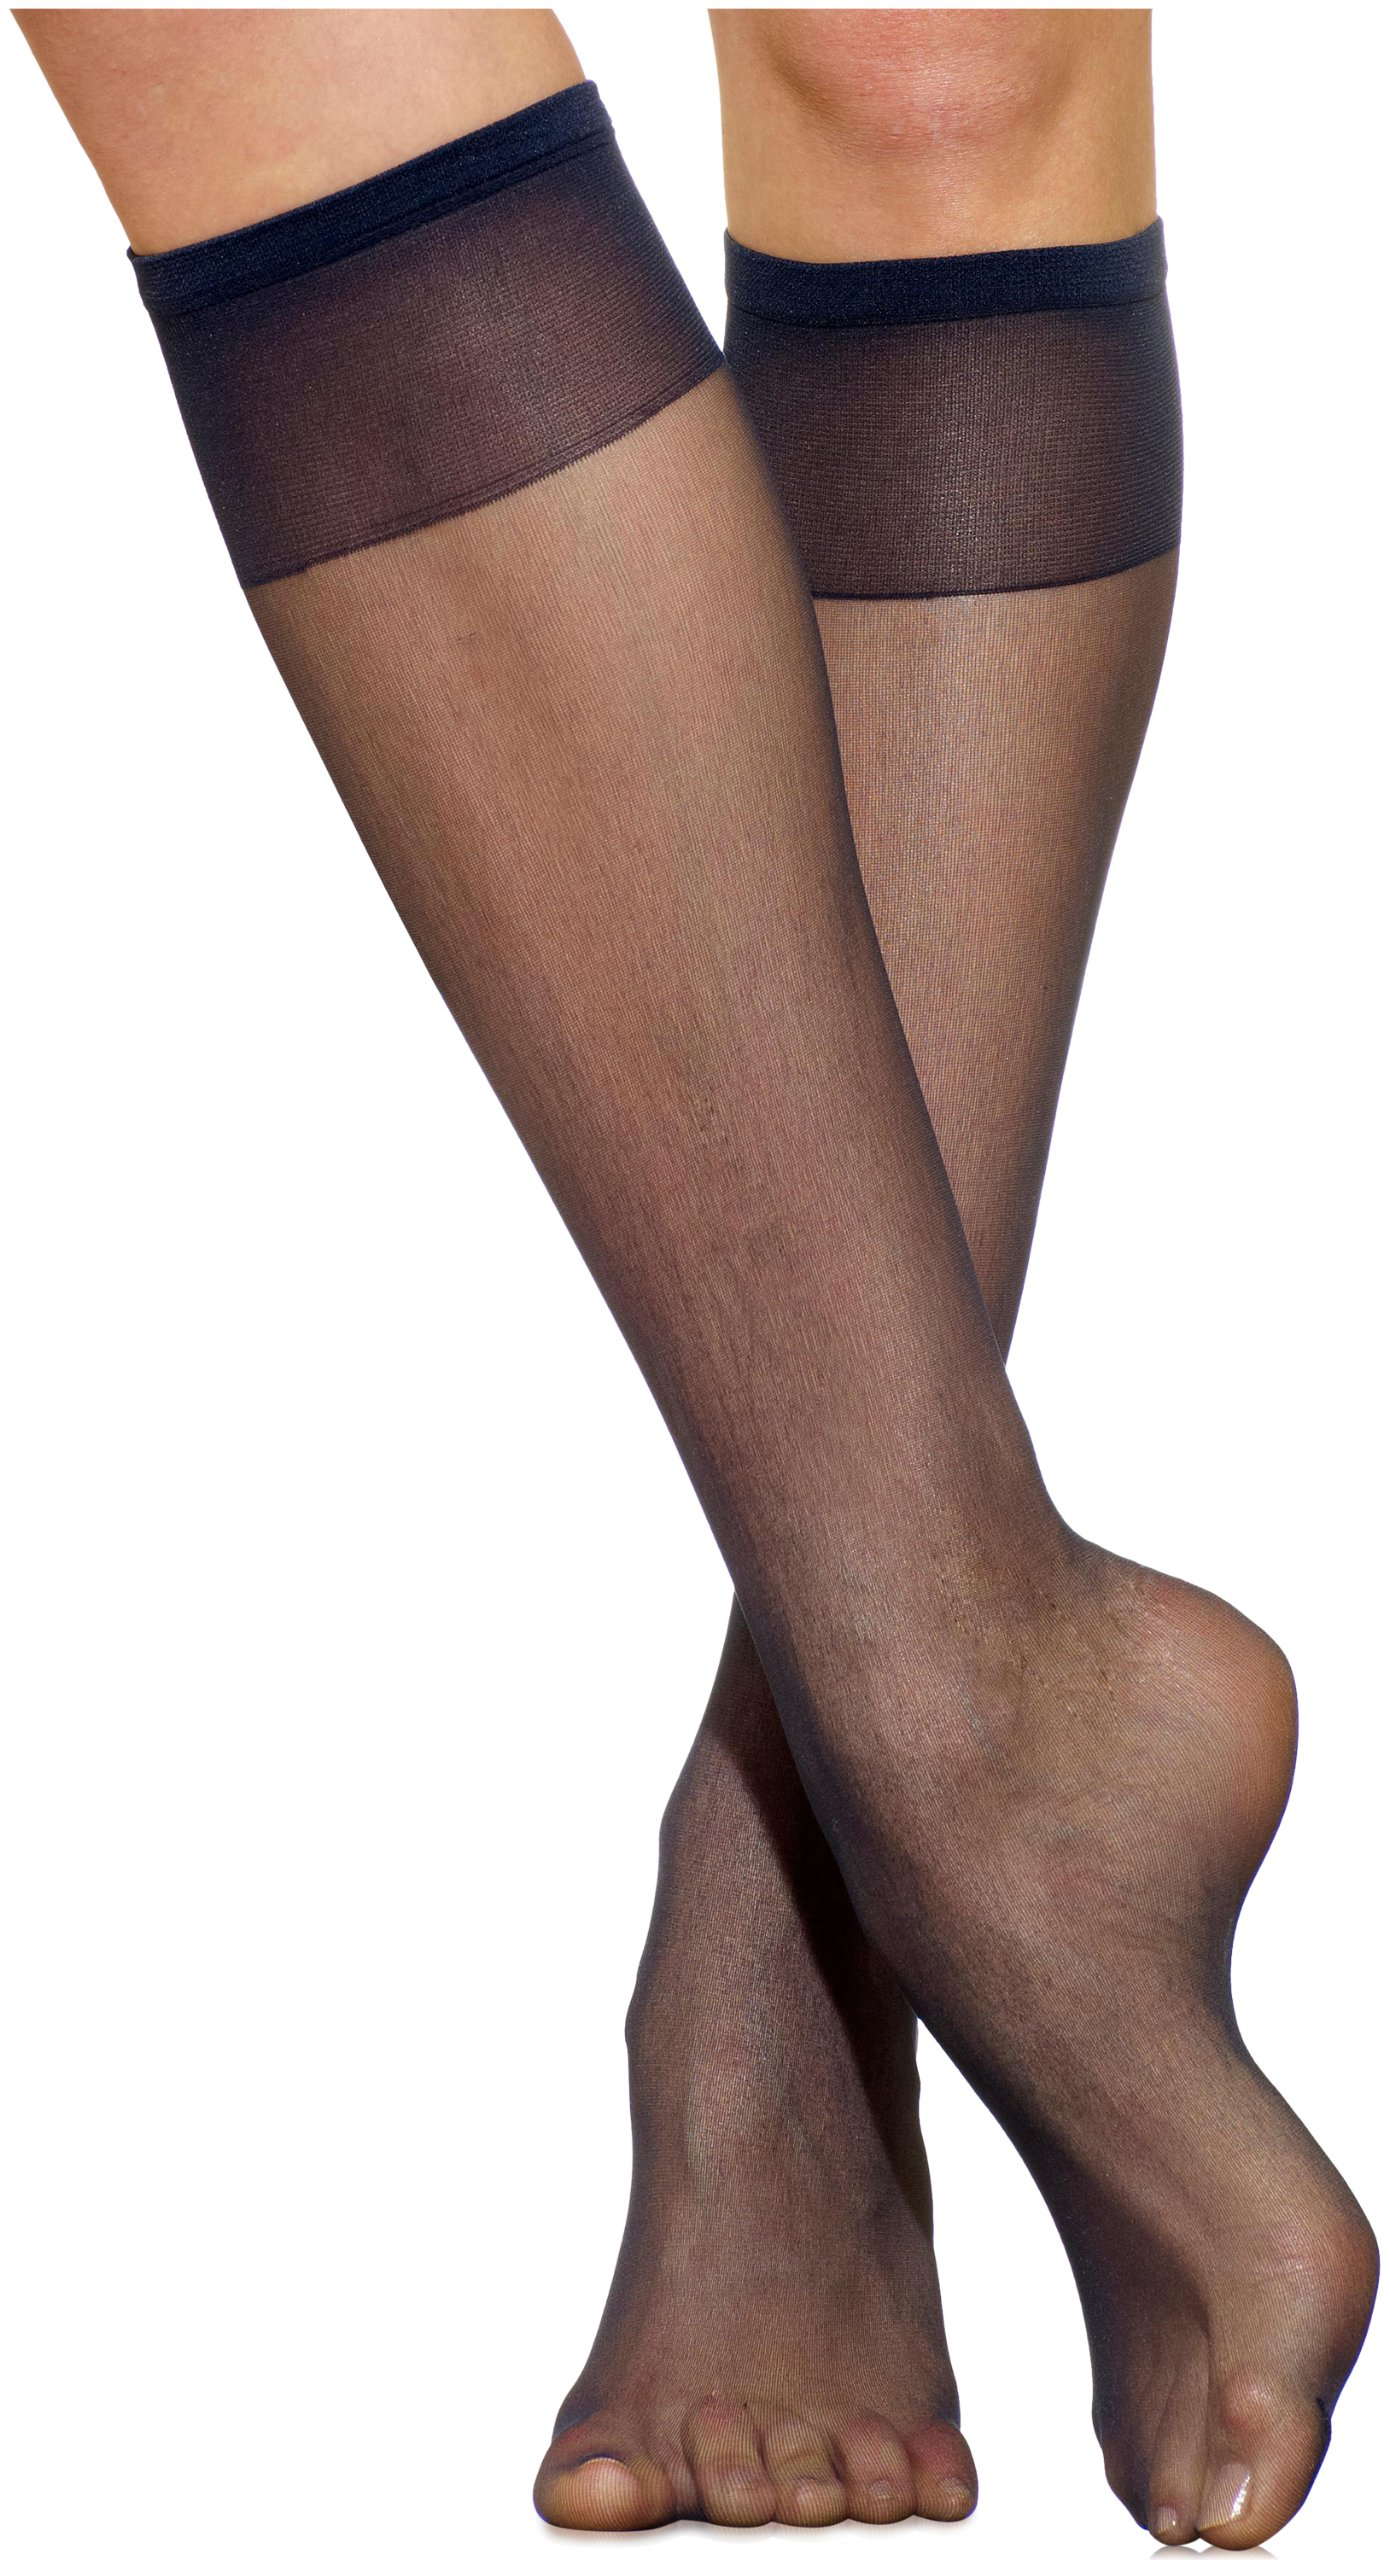 cf46e9878 Silkies Women s Ultra Knee Highs with Energizing Support 3 Pair Pack  -Regular Navy Blue